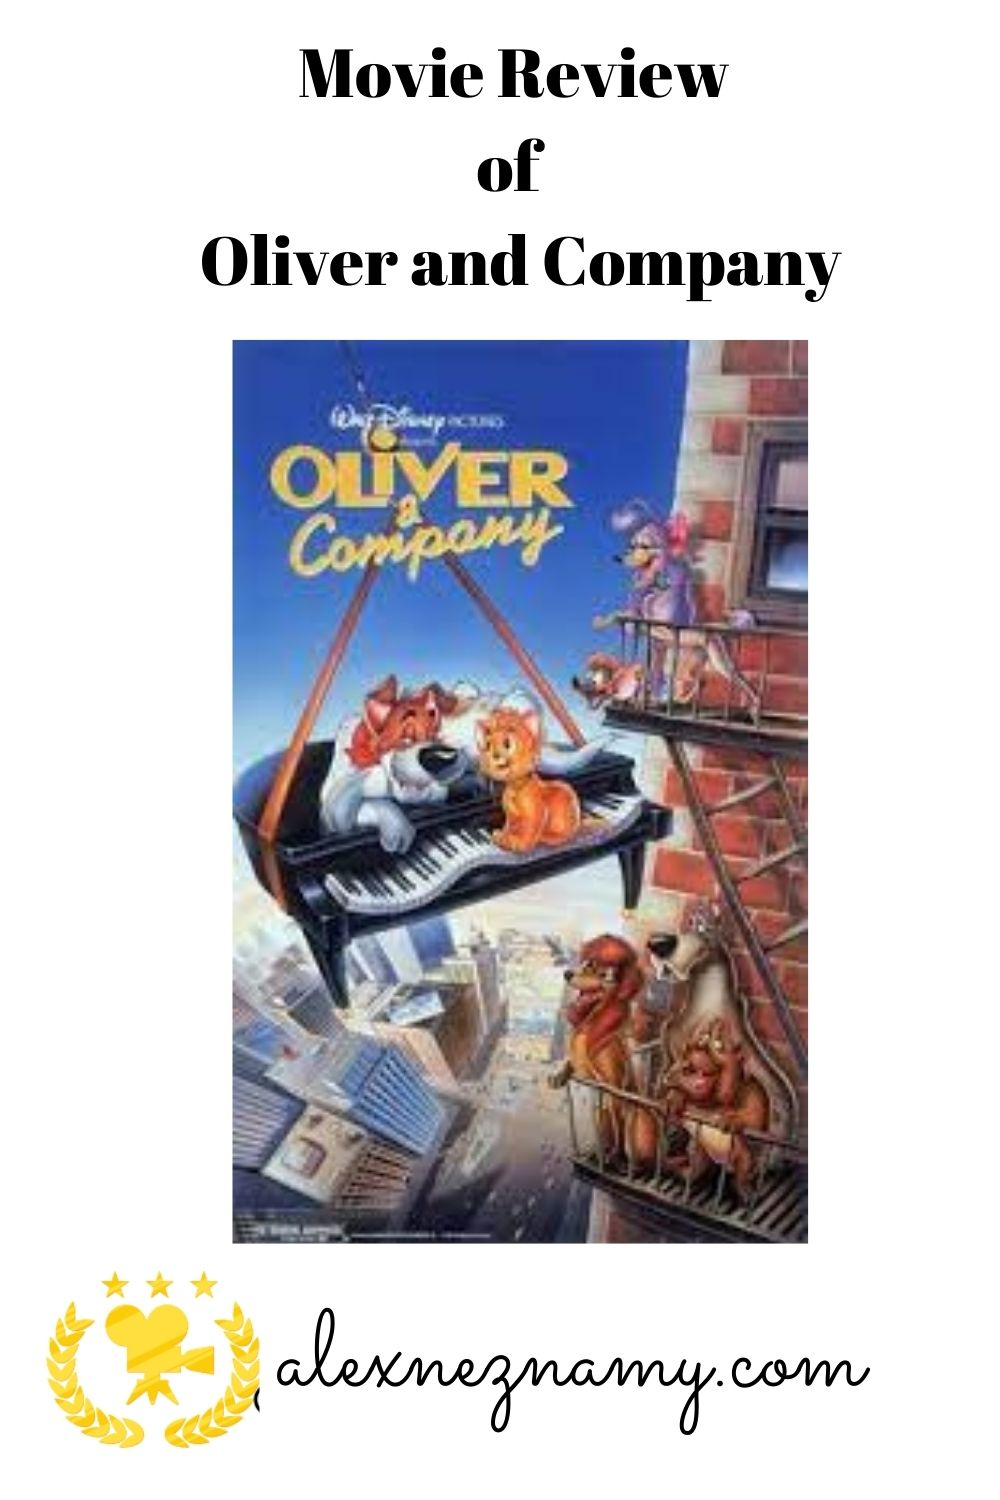 Movie Review of Oliver and Company